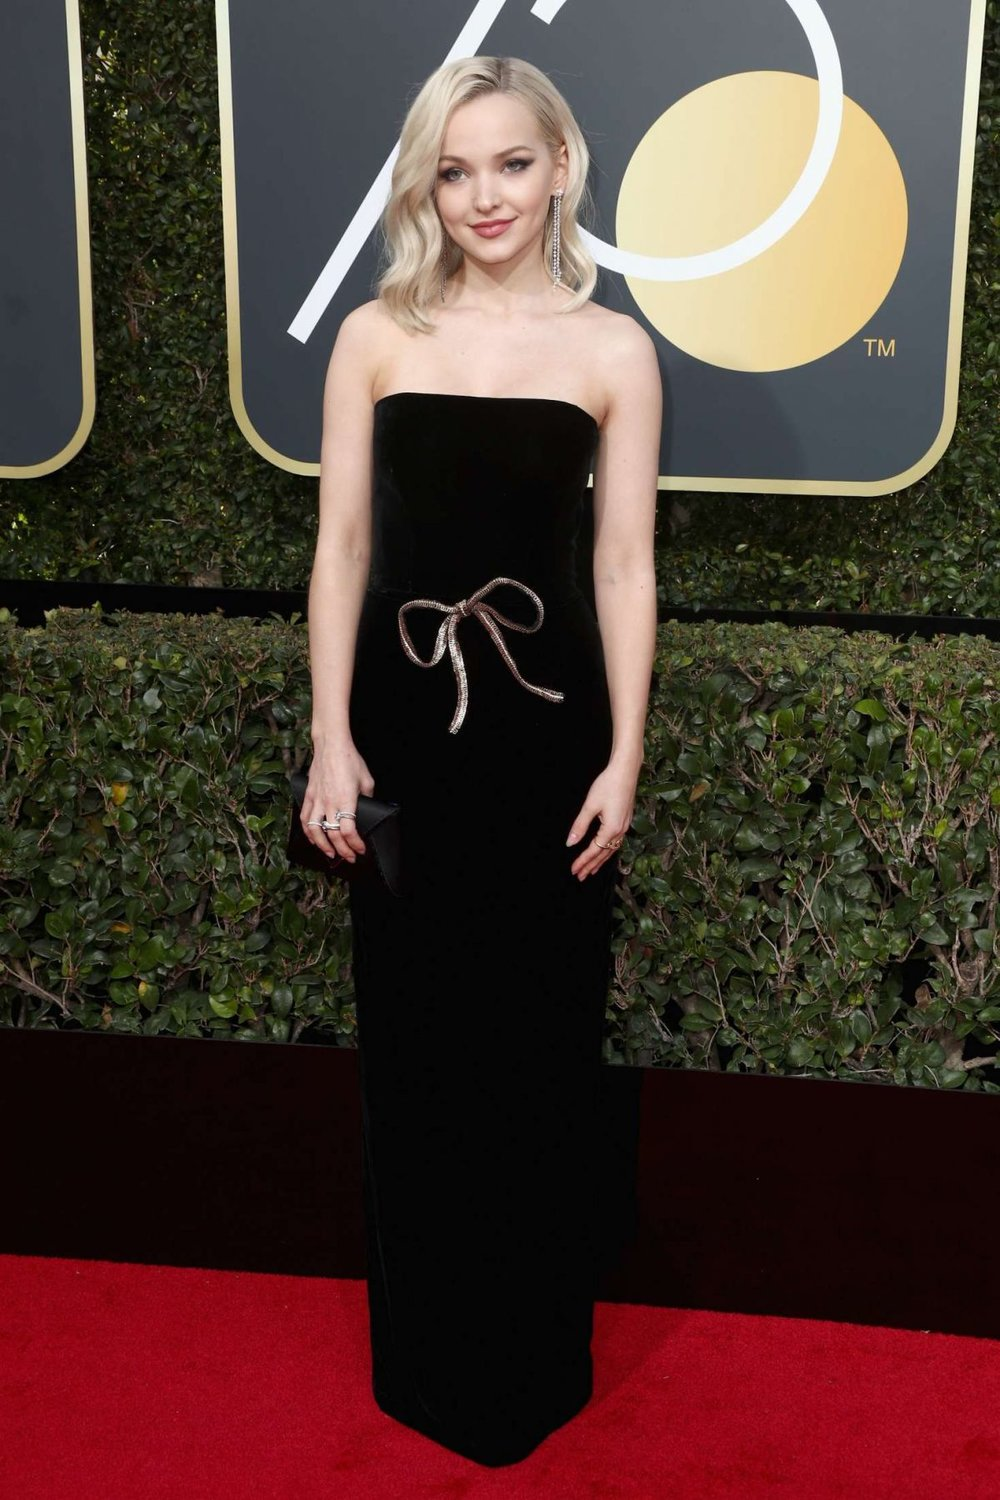 dove-cameron-at-2018-golden-globe-awards-in-beverly-hills-8.jpg